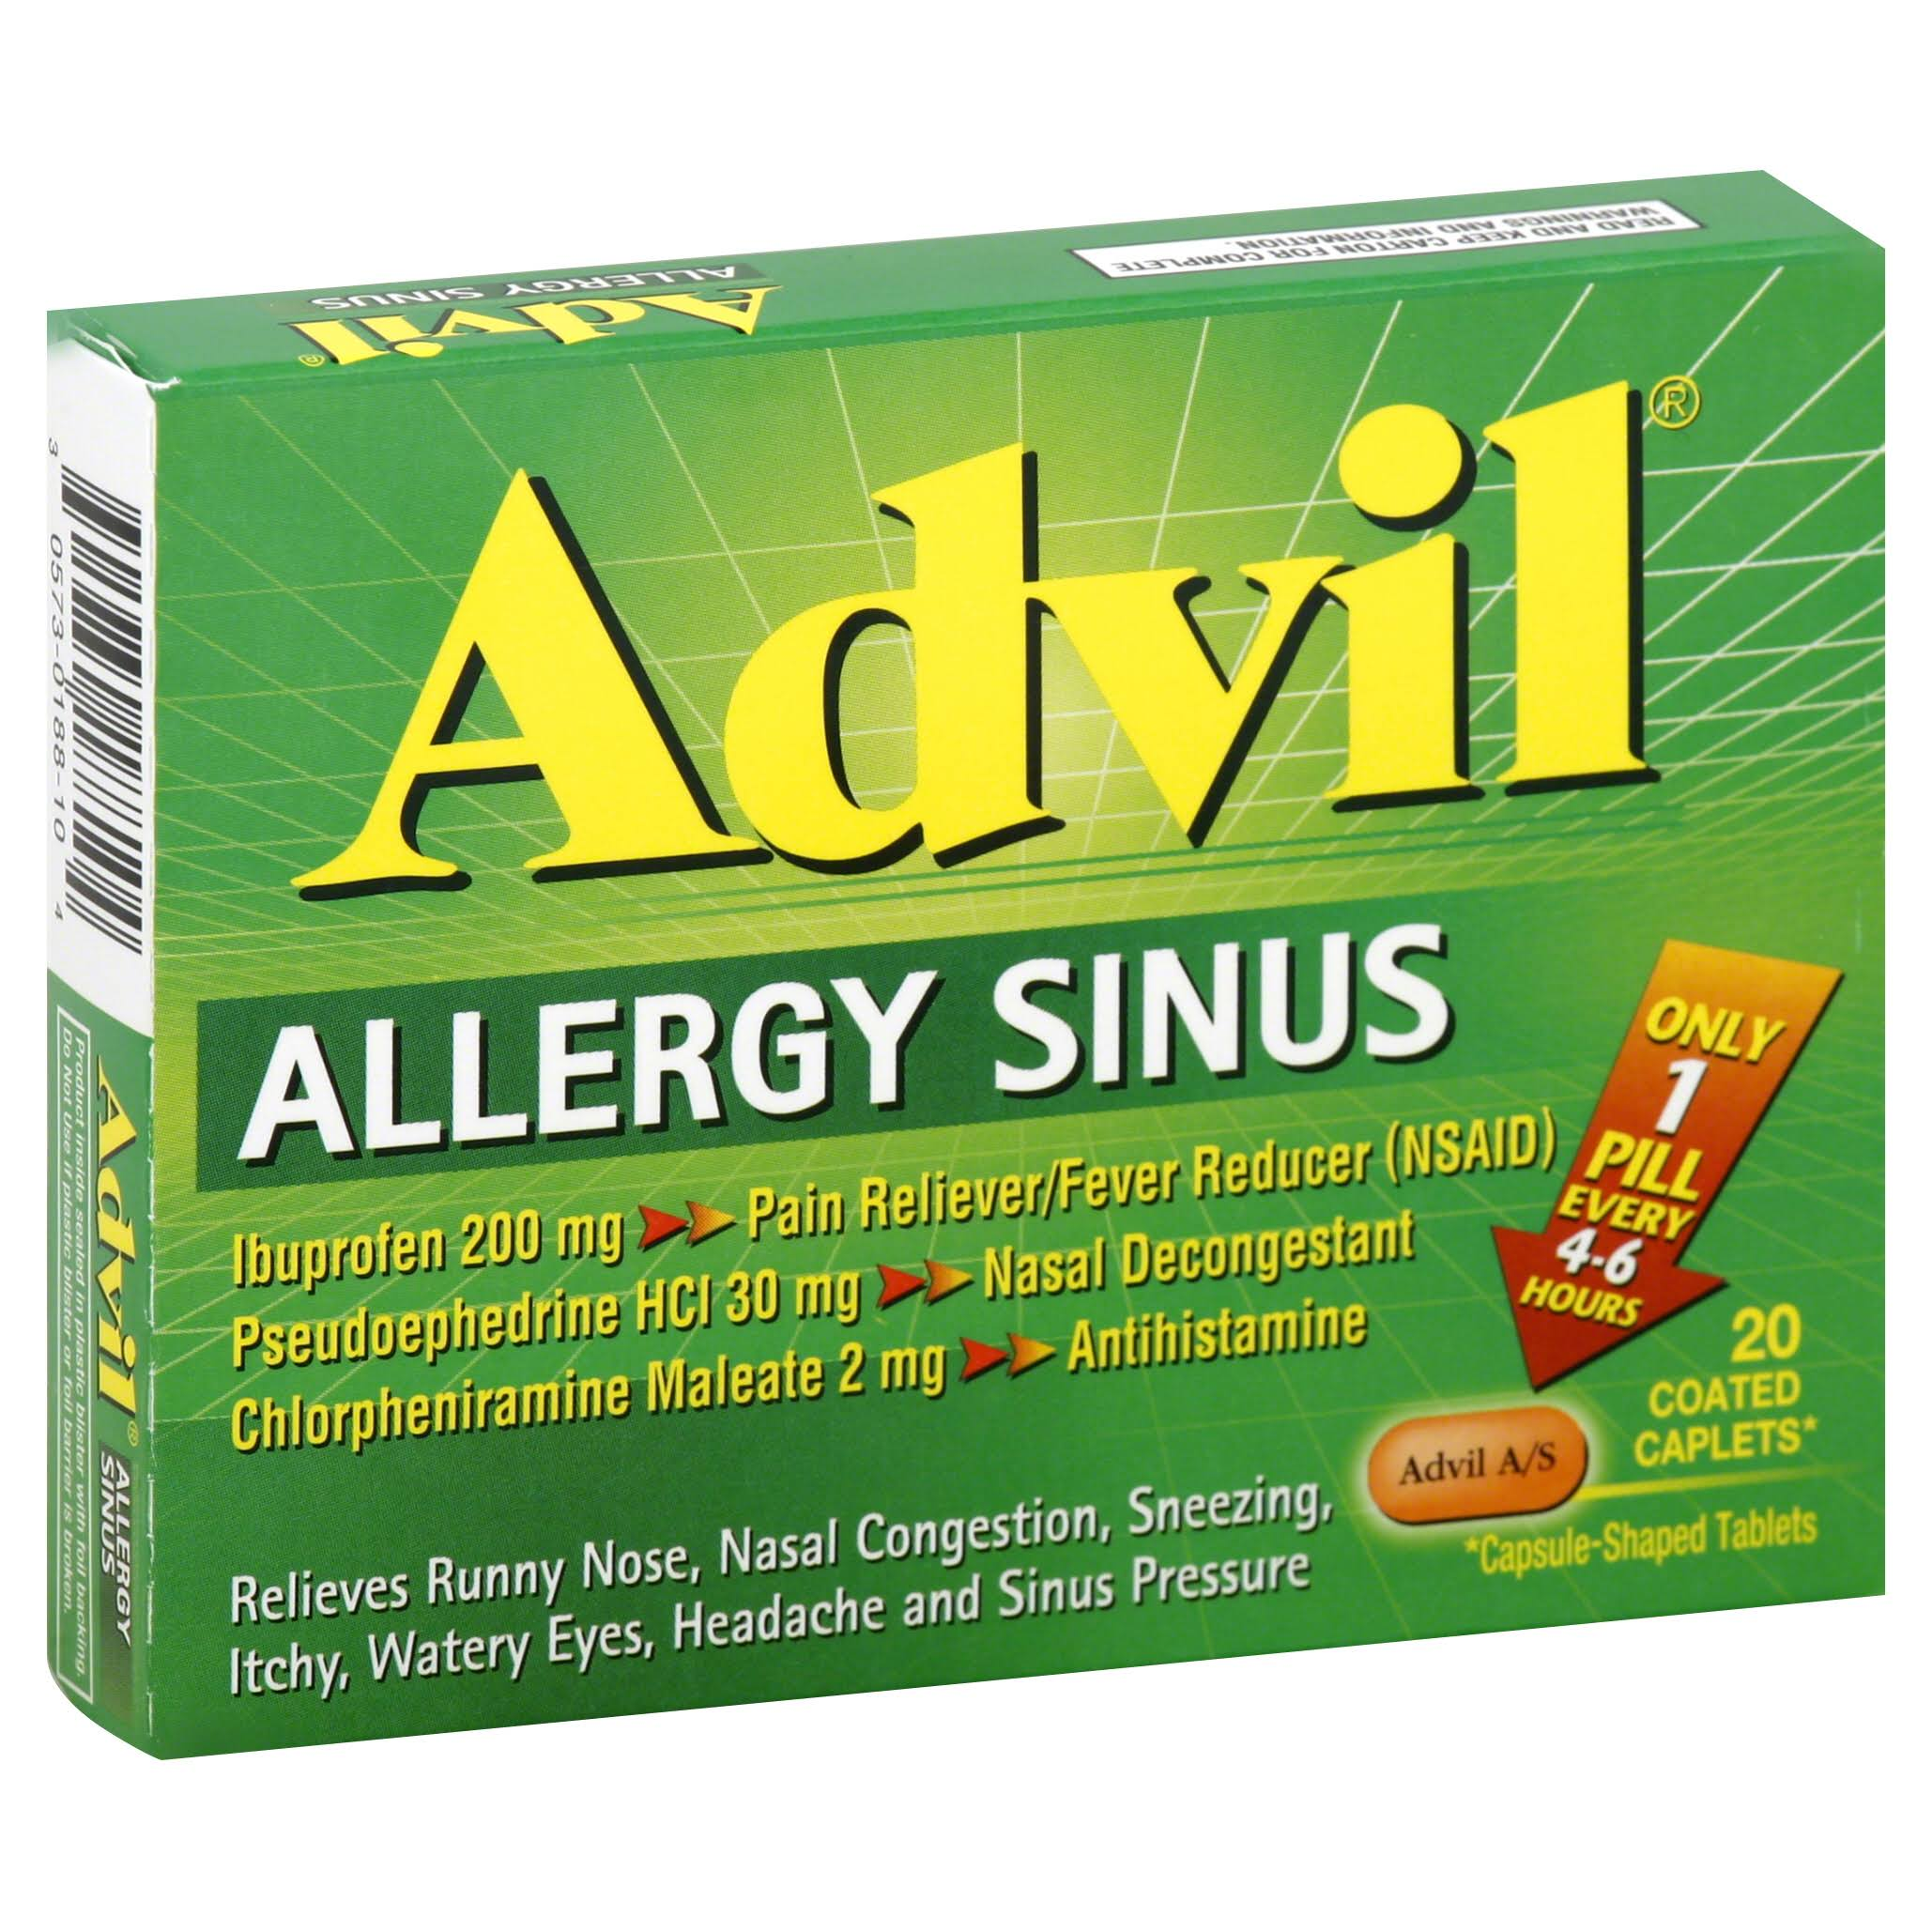 Advil Allergy Sinus Caplets - 20ct